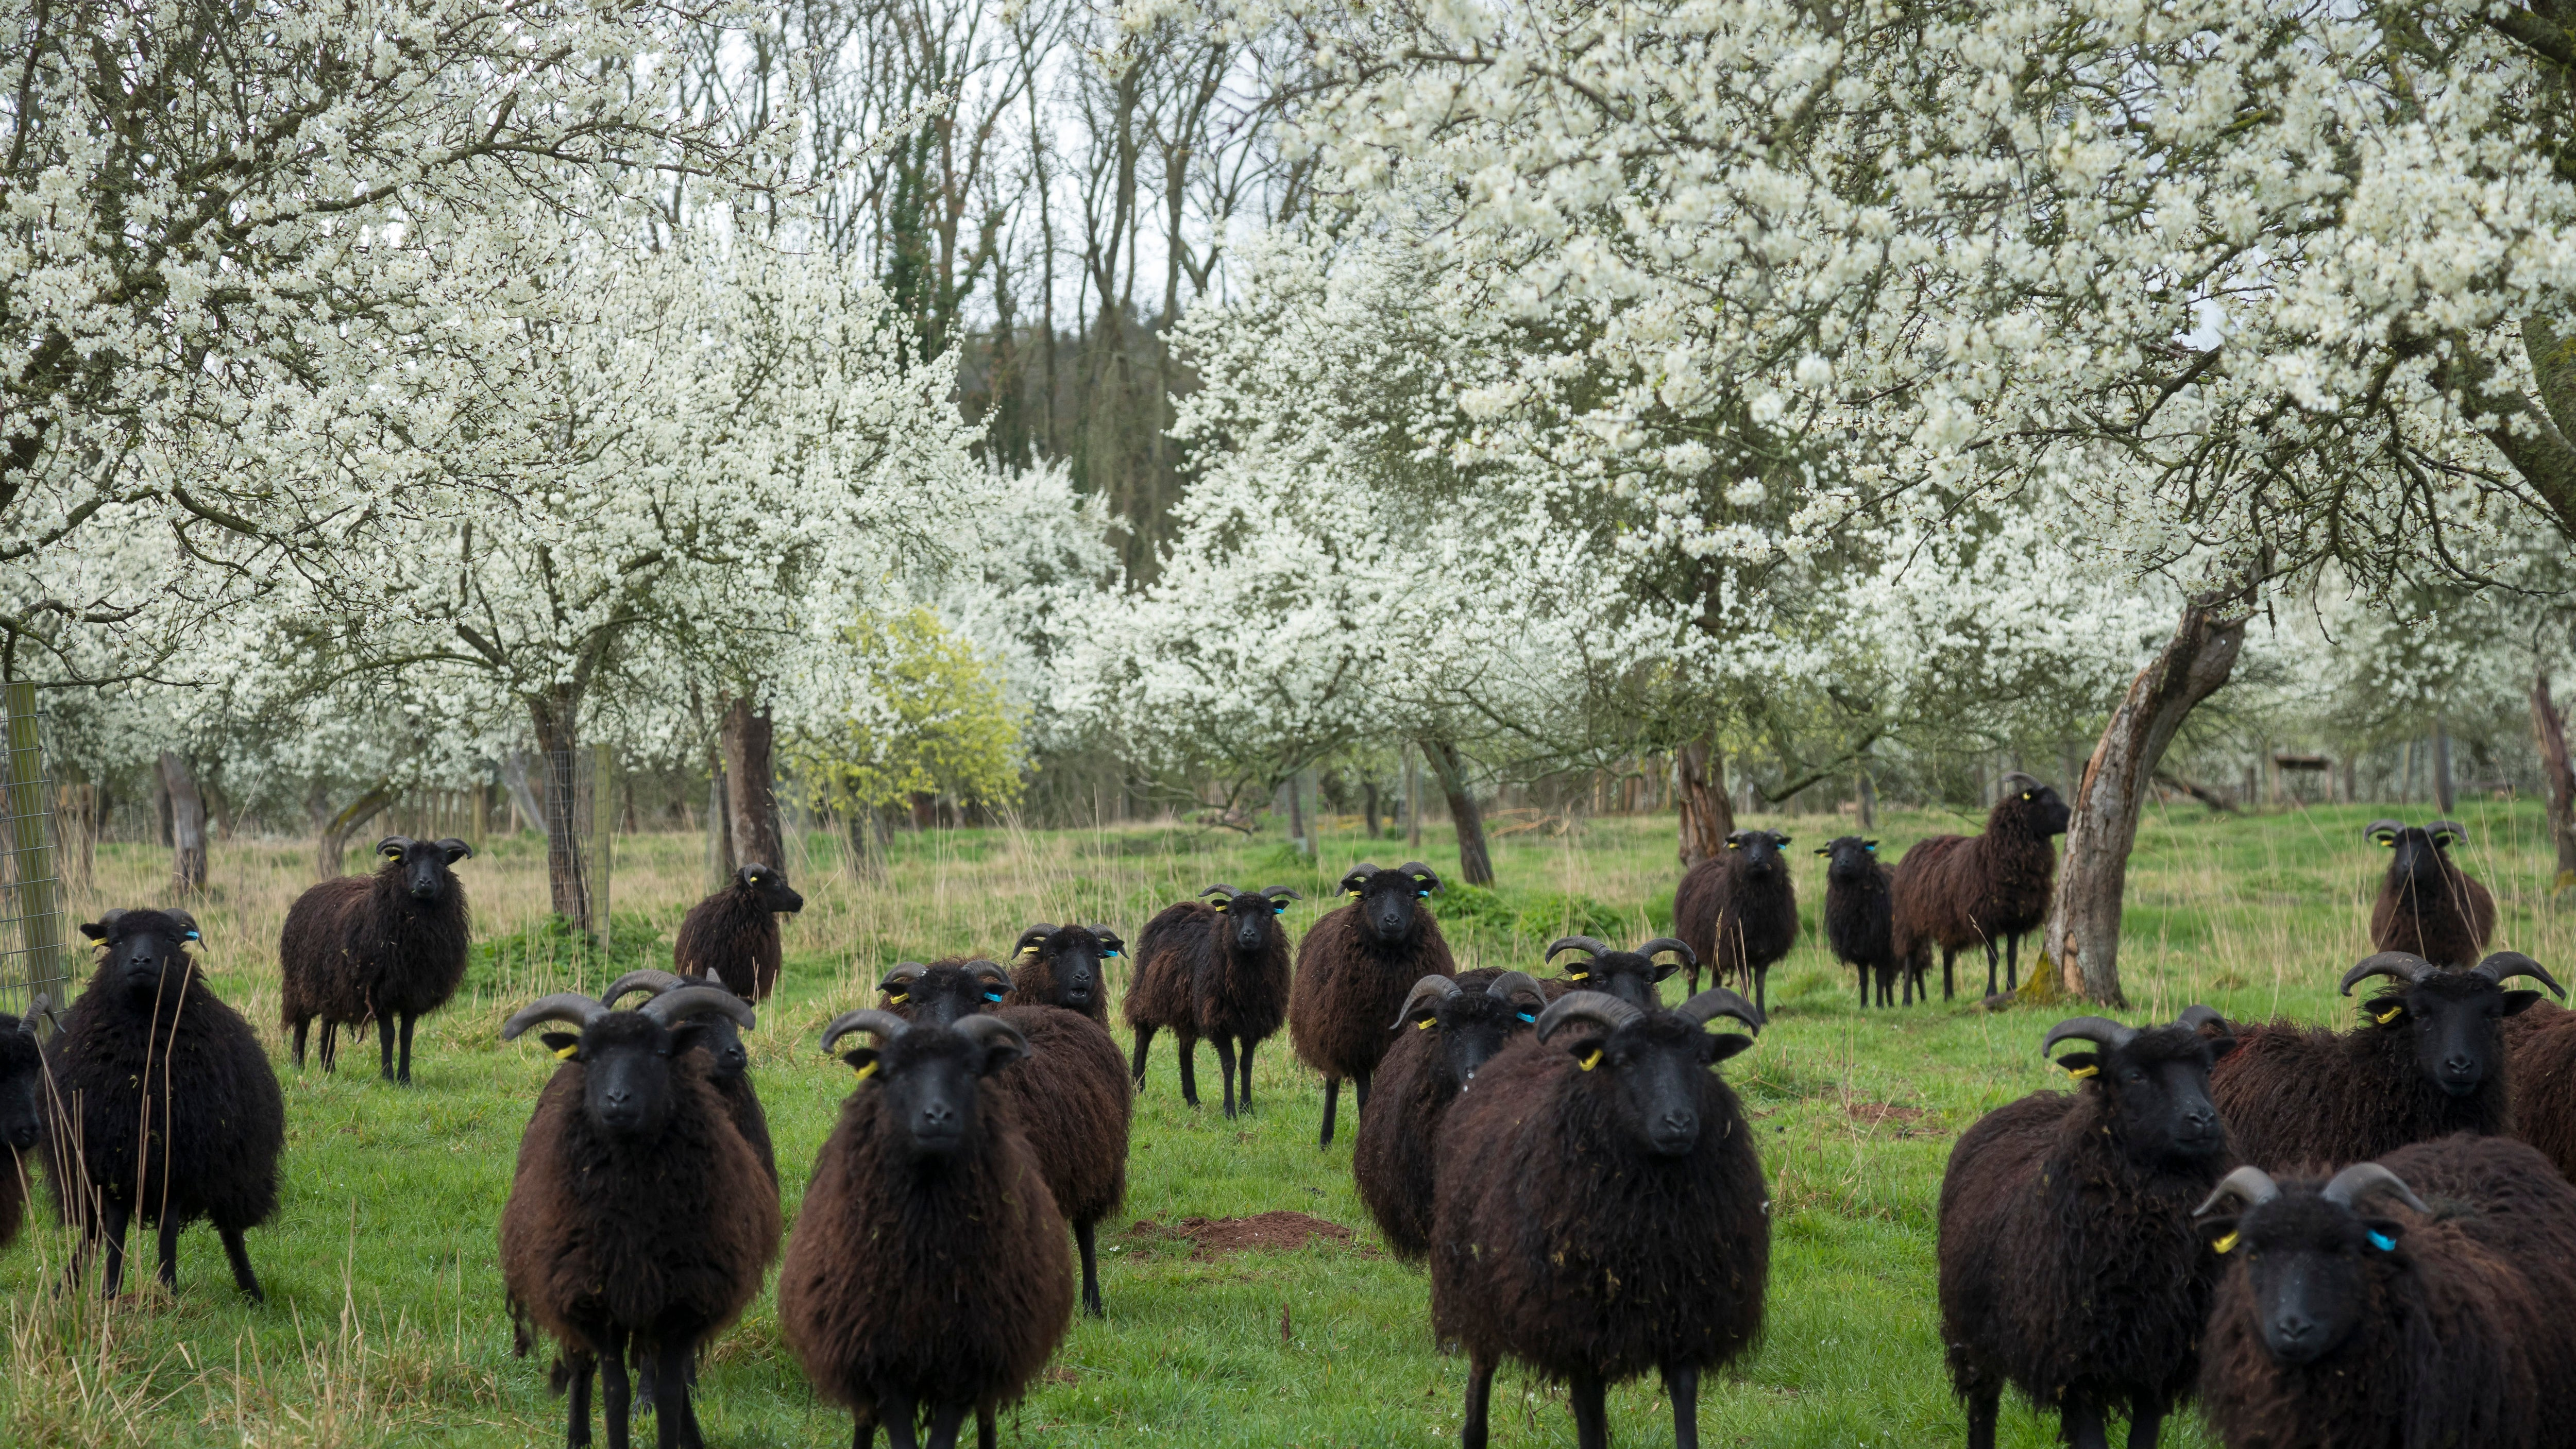 The Hawkins' Hebridean sheep in the orchard, they are small and black with horns